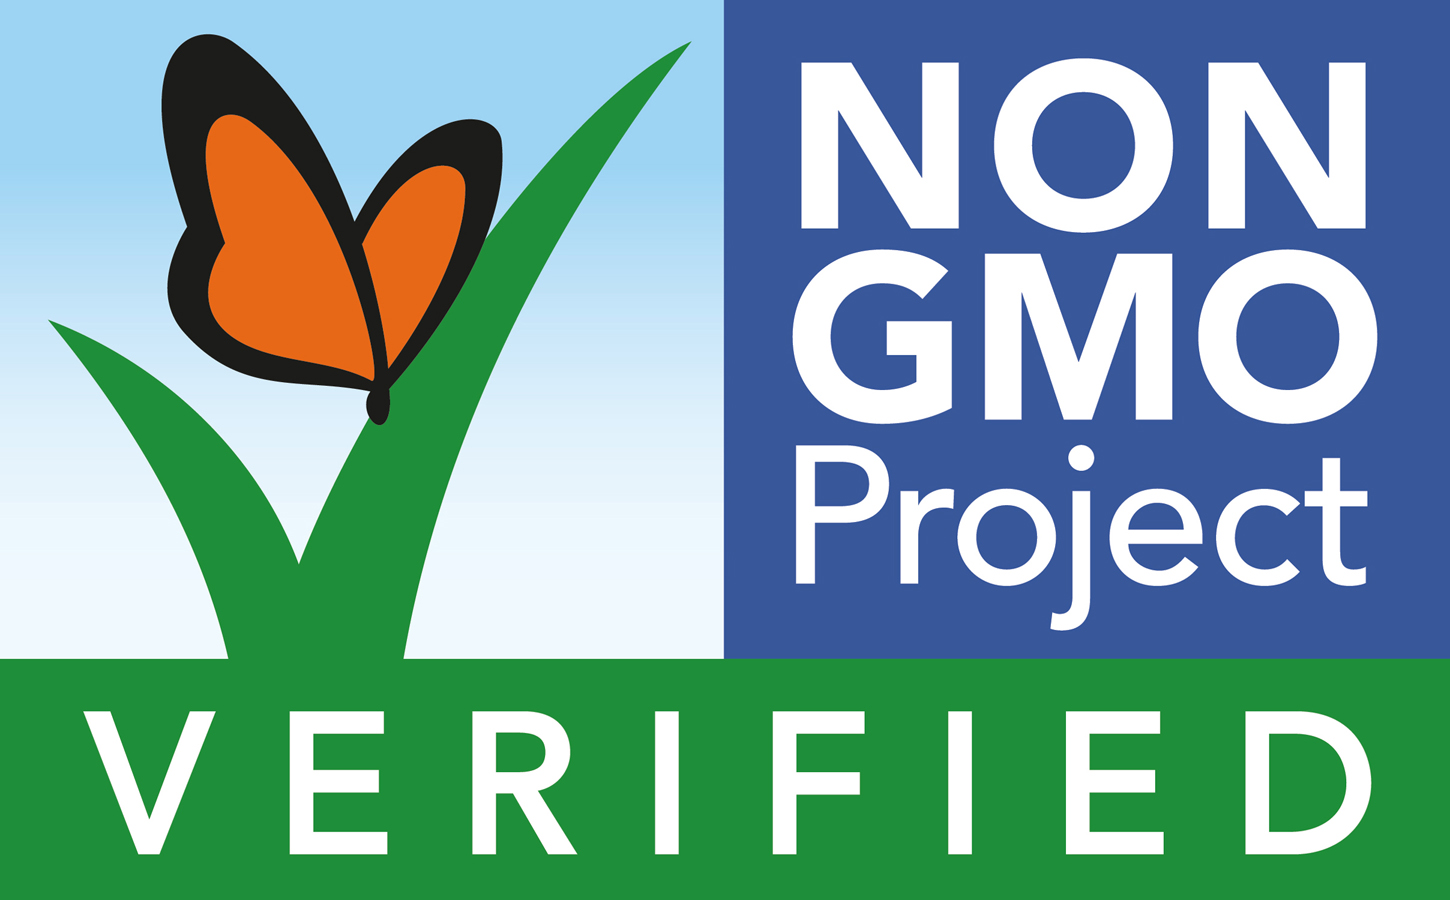 Look for this label to be sure a product is free from GMO's.